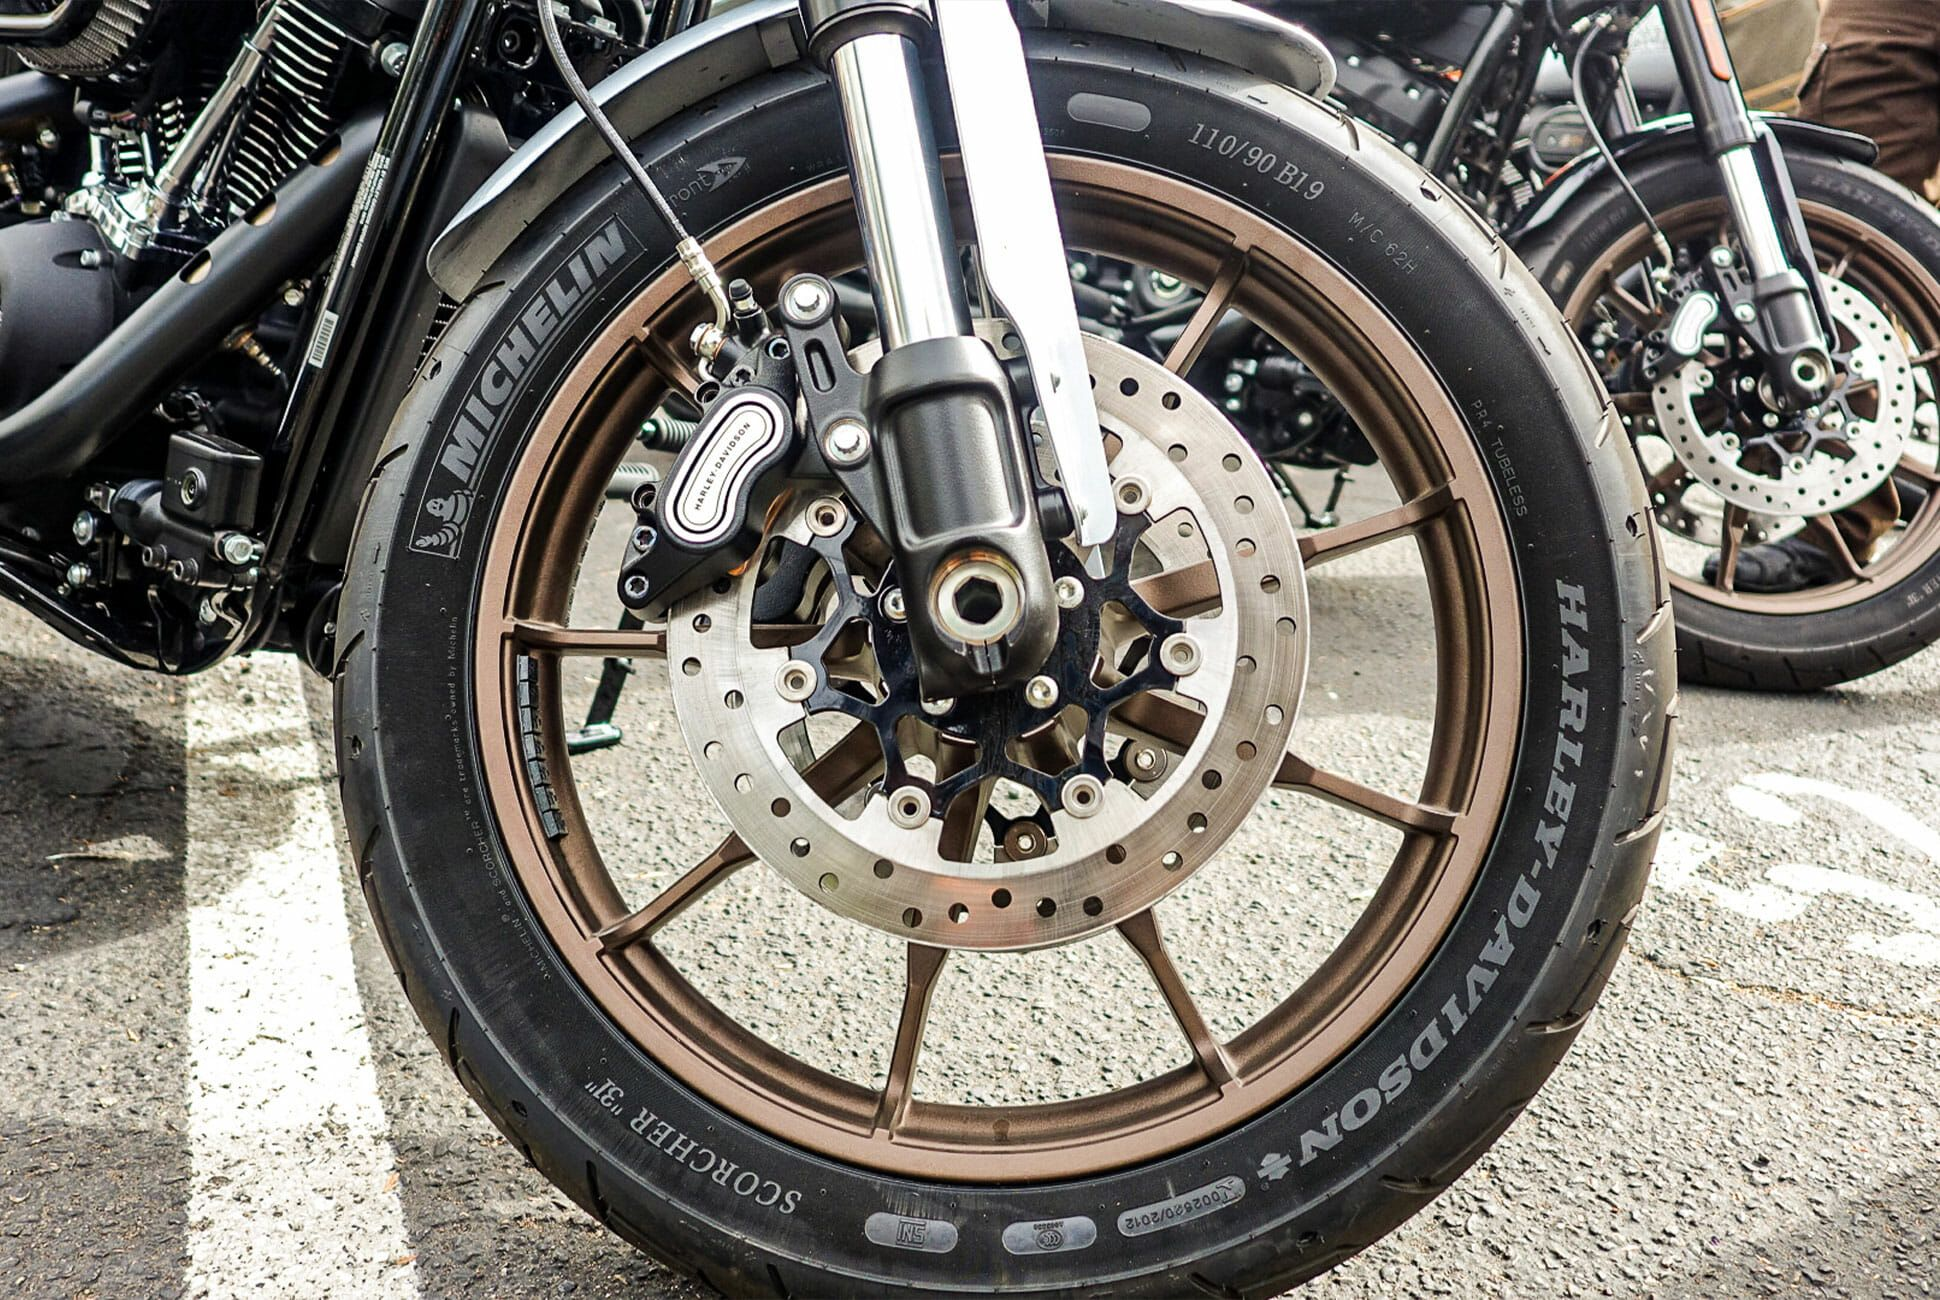 2020 Harley-Davidson Low Rider S Review: An Icon, Reborn ...